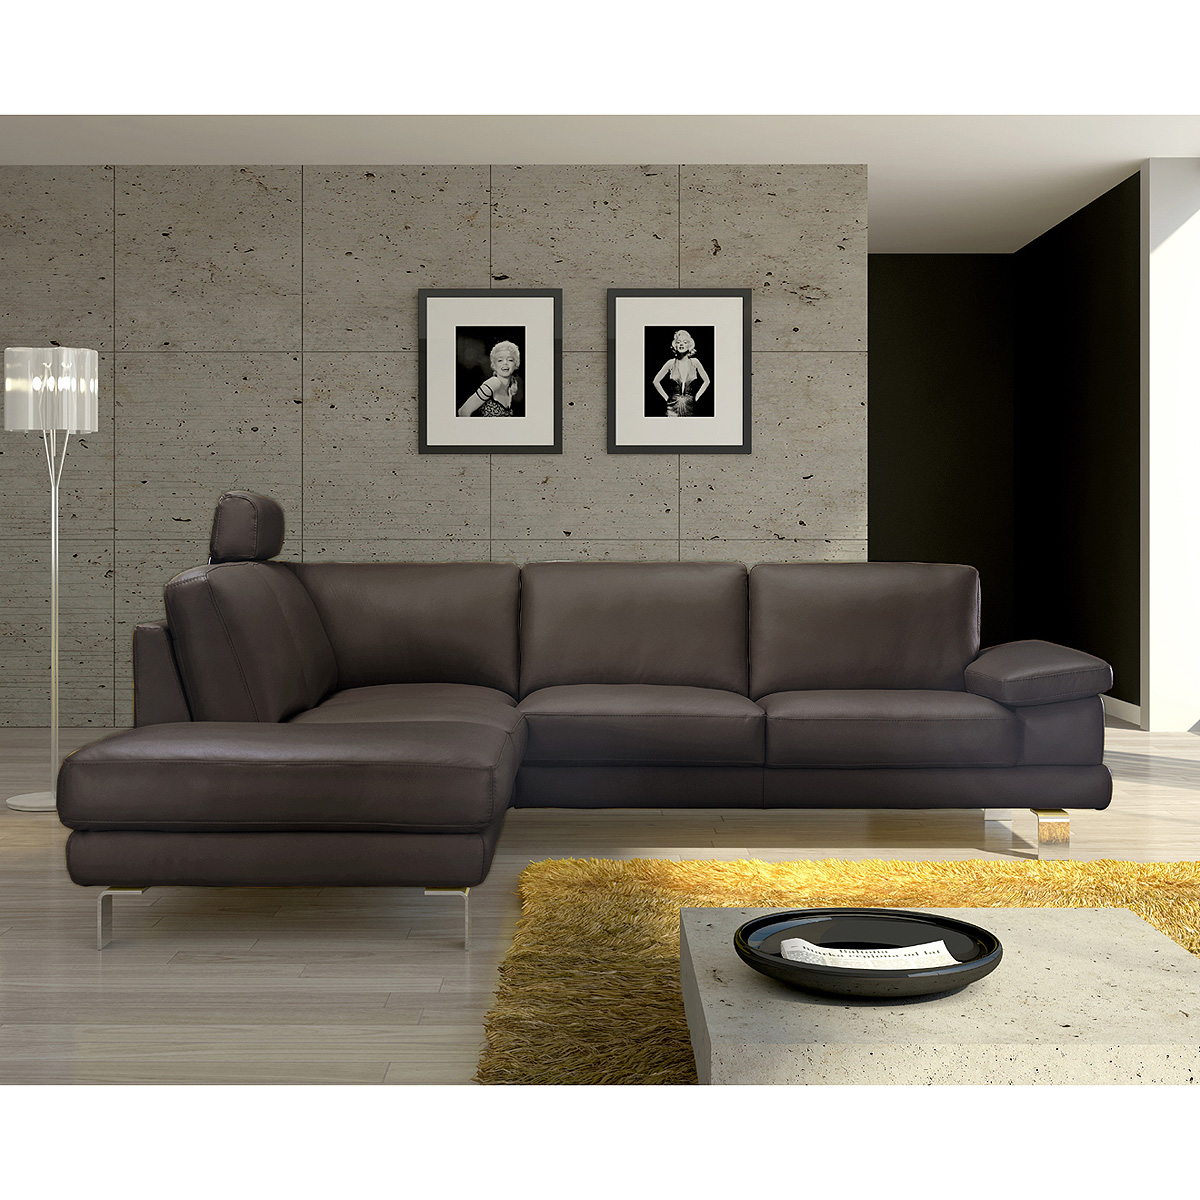 ecksofa mezzos wohnlandschaft sofa polsterm bel in braun mit funktion 269x220. Black Bedroom Furniture Sets. Home Design Ideas